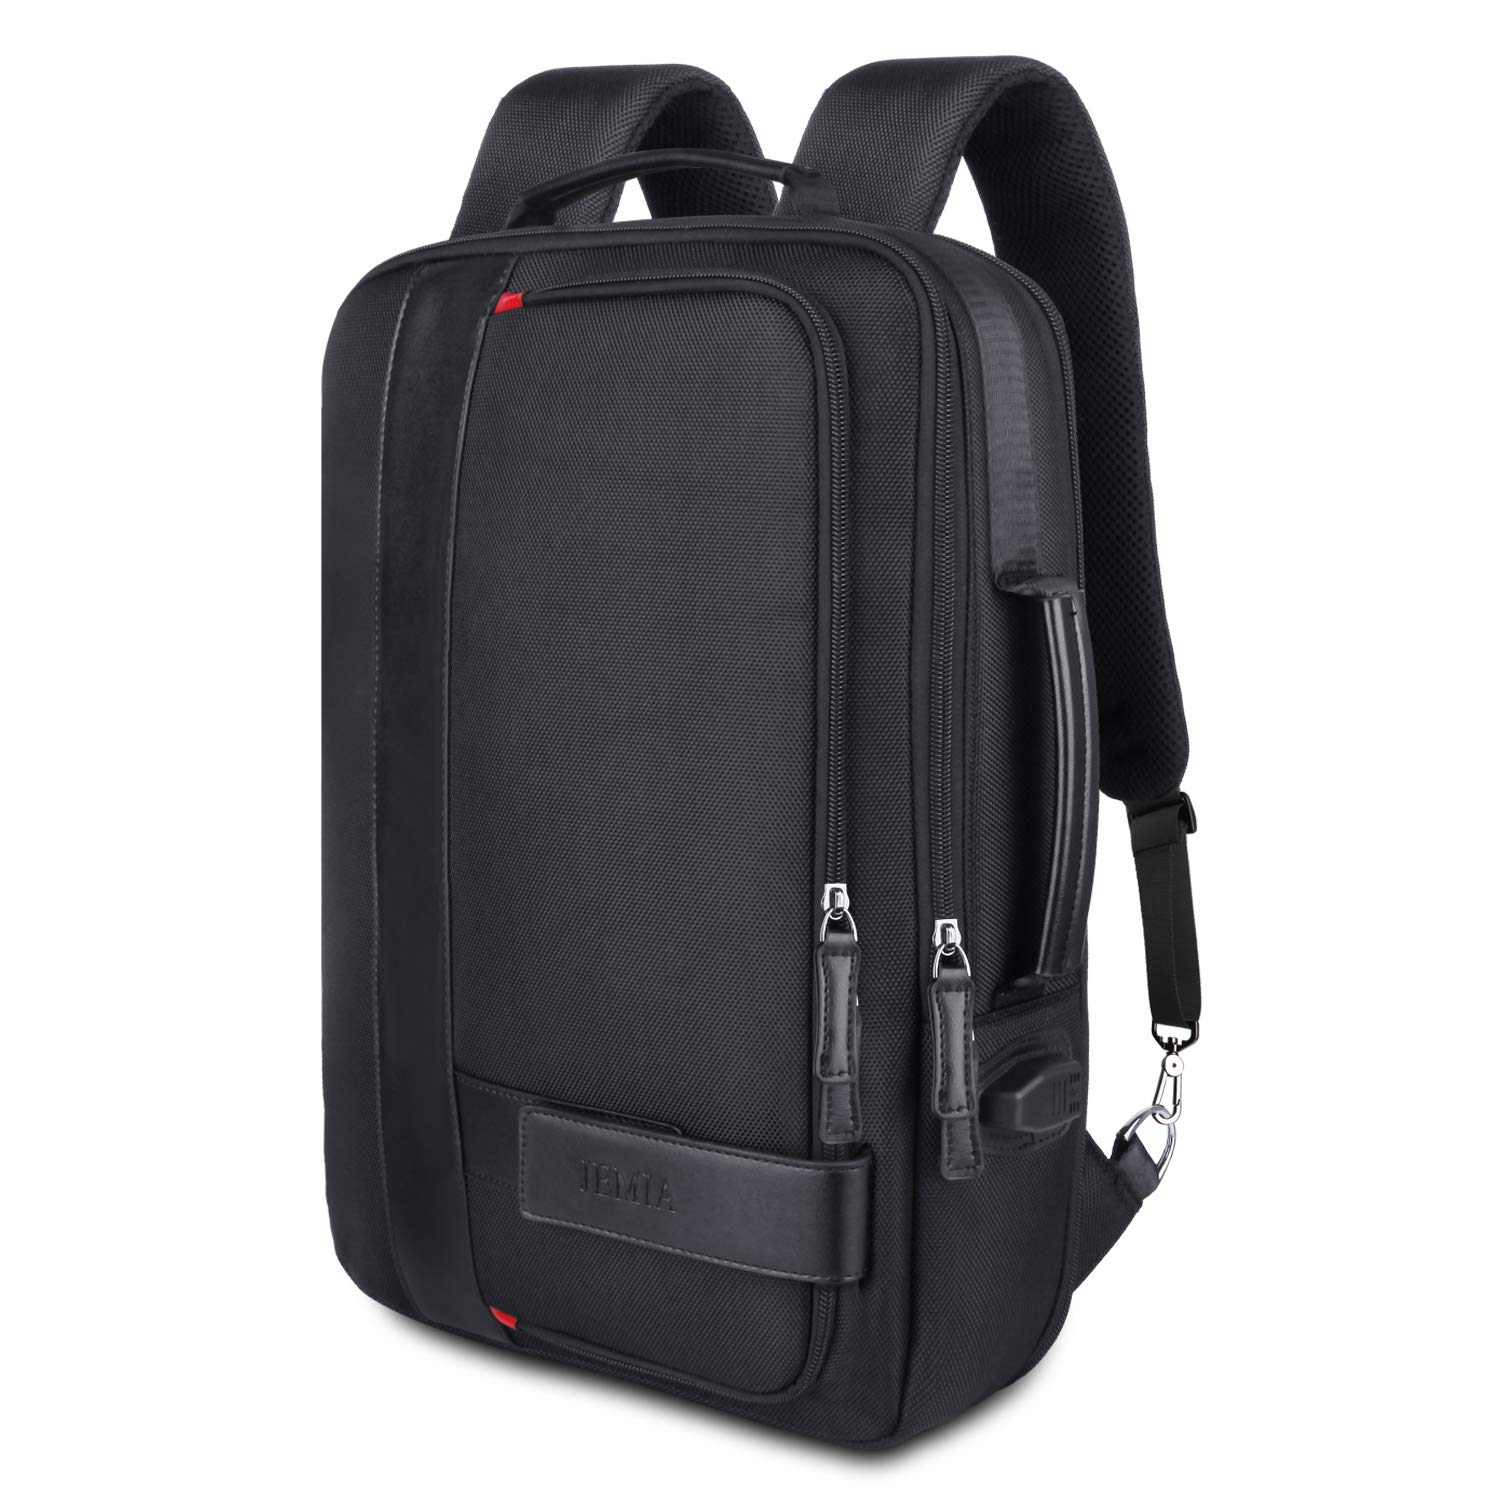 a51d49fb6723 JEMIA - Black Expandable Backpack with USB Outlet Charging Port and Laptop  Holder Sleeve Compartment